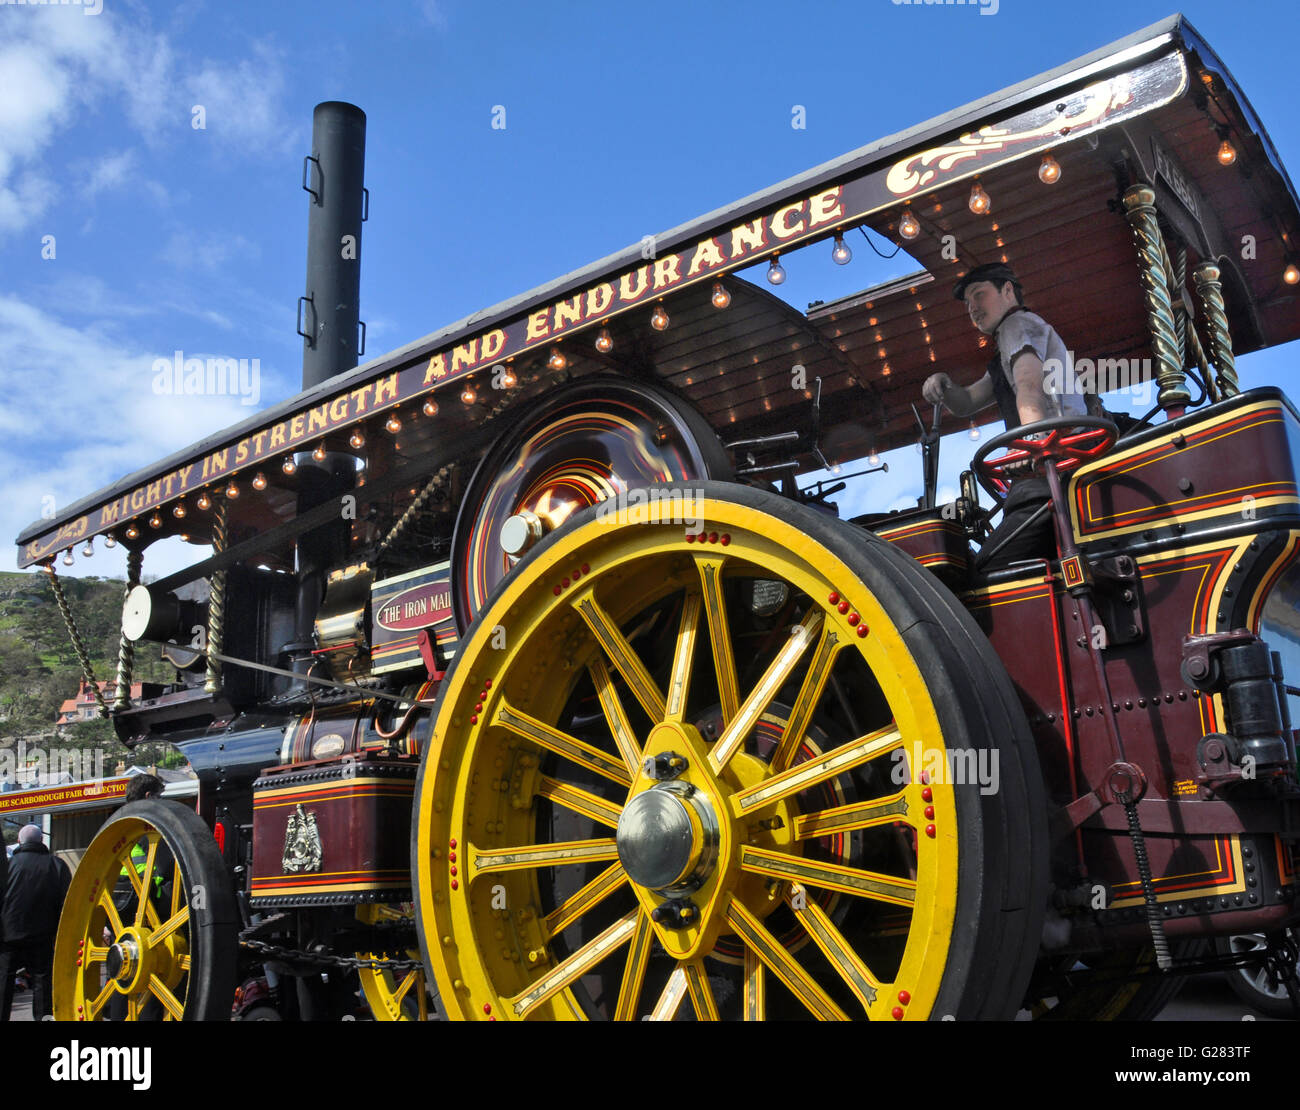 Steam powered traction engine, Victorial Extravaganza, Llandudo, Wales, UK - Stock Image